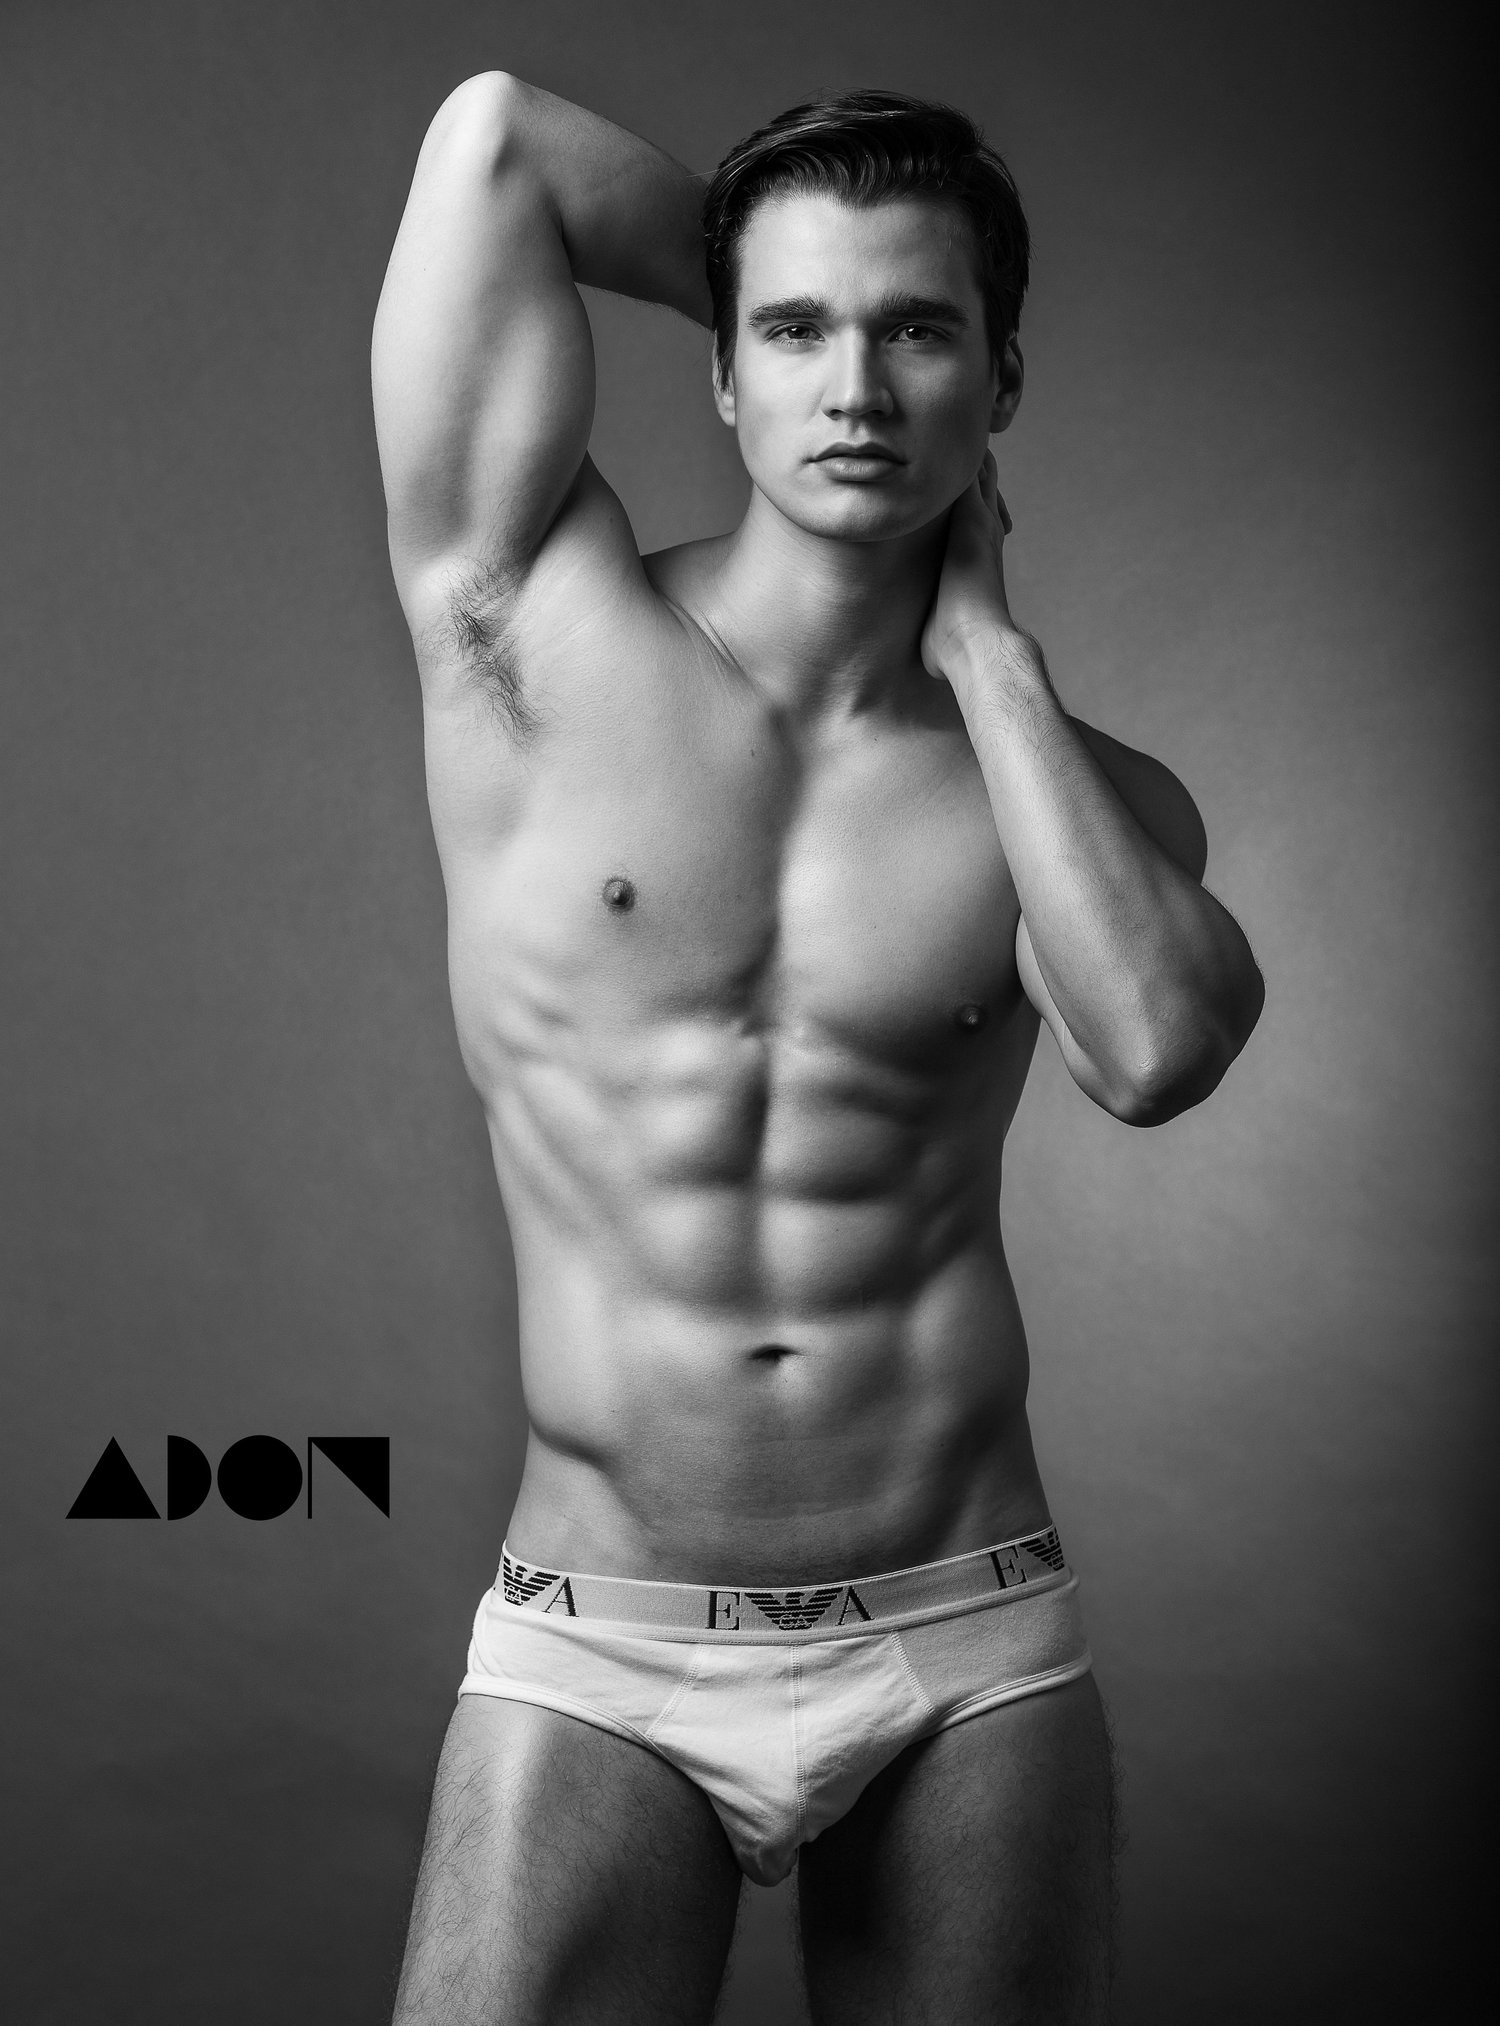 Adon Exclusive: Model Hans Weiser By Jason Oung